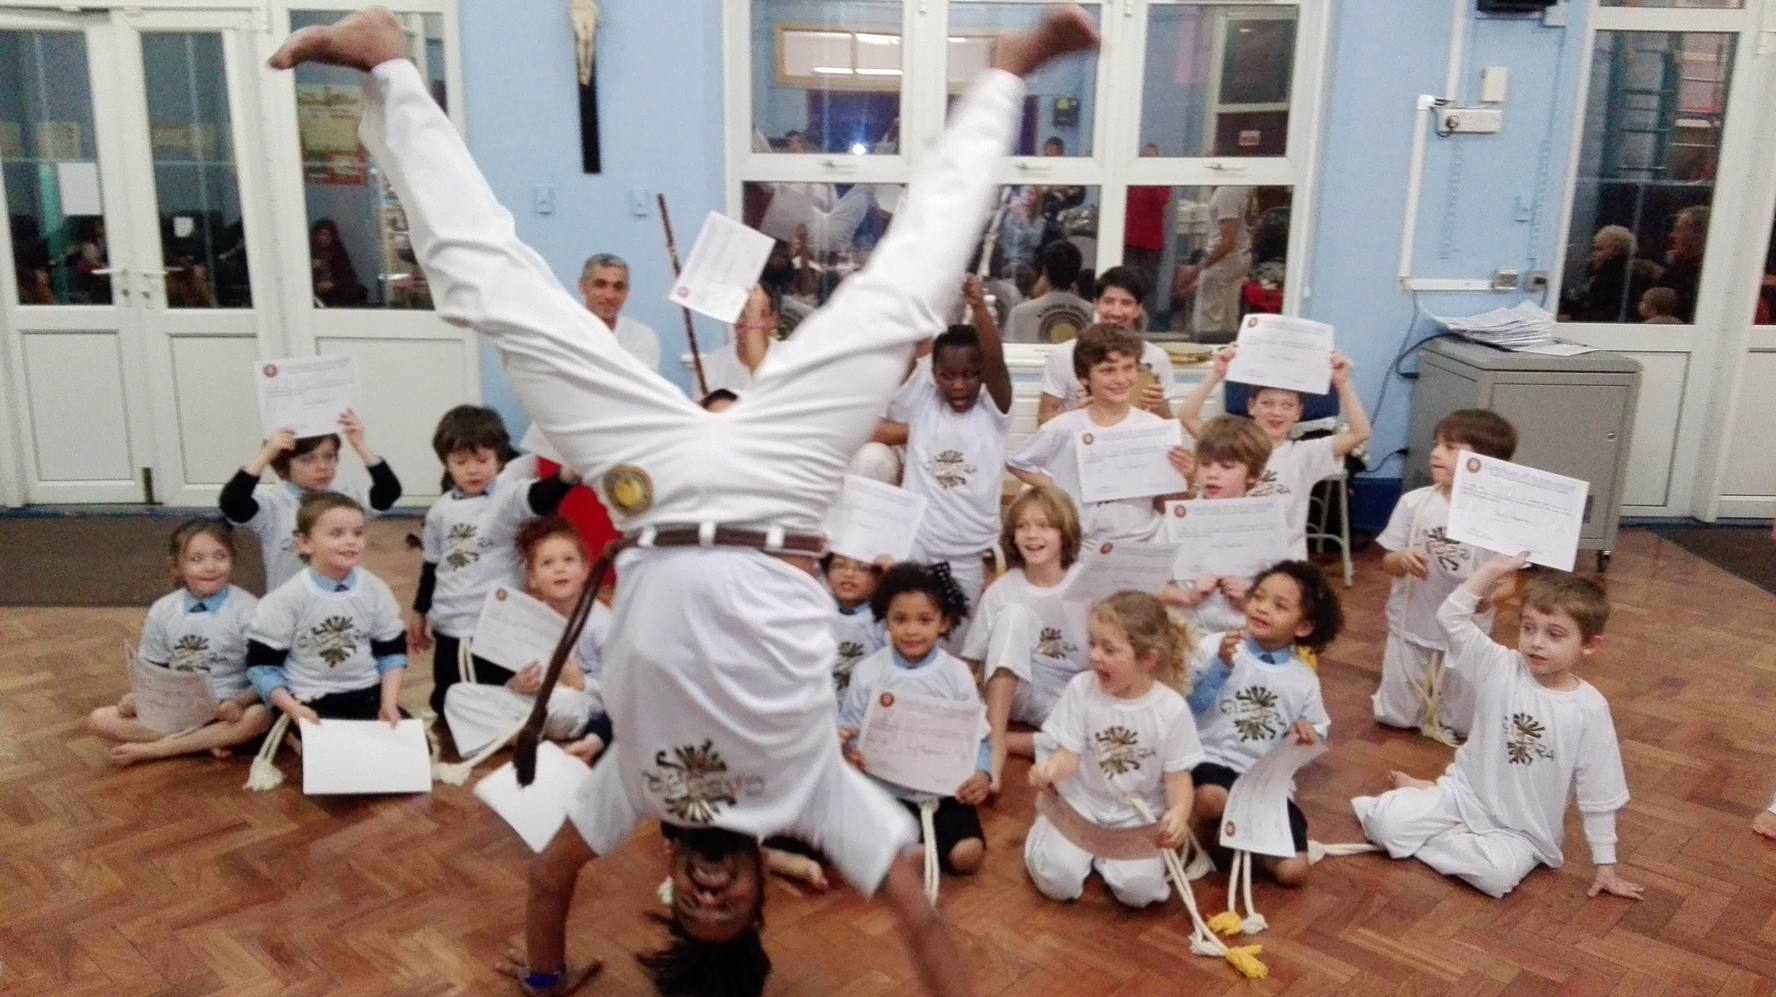 Children play capoeira too